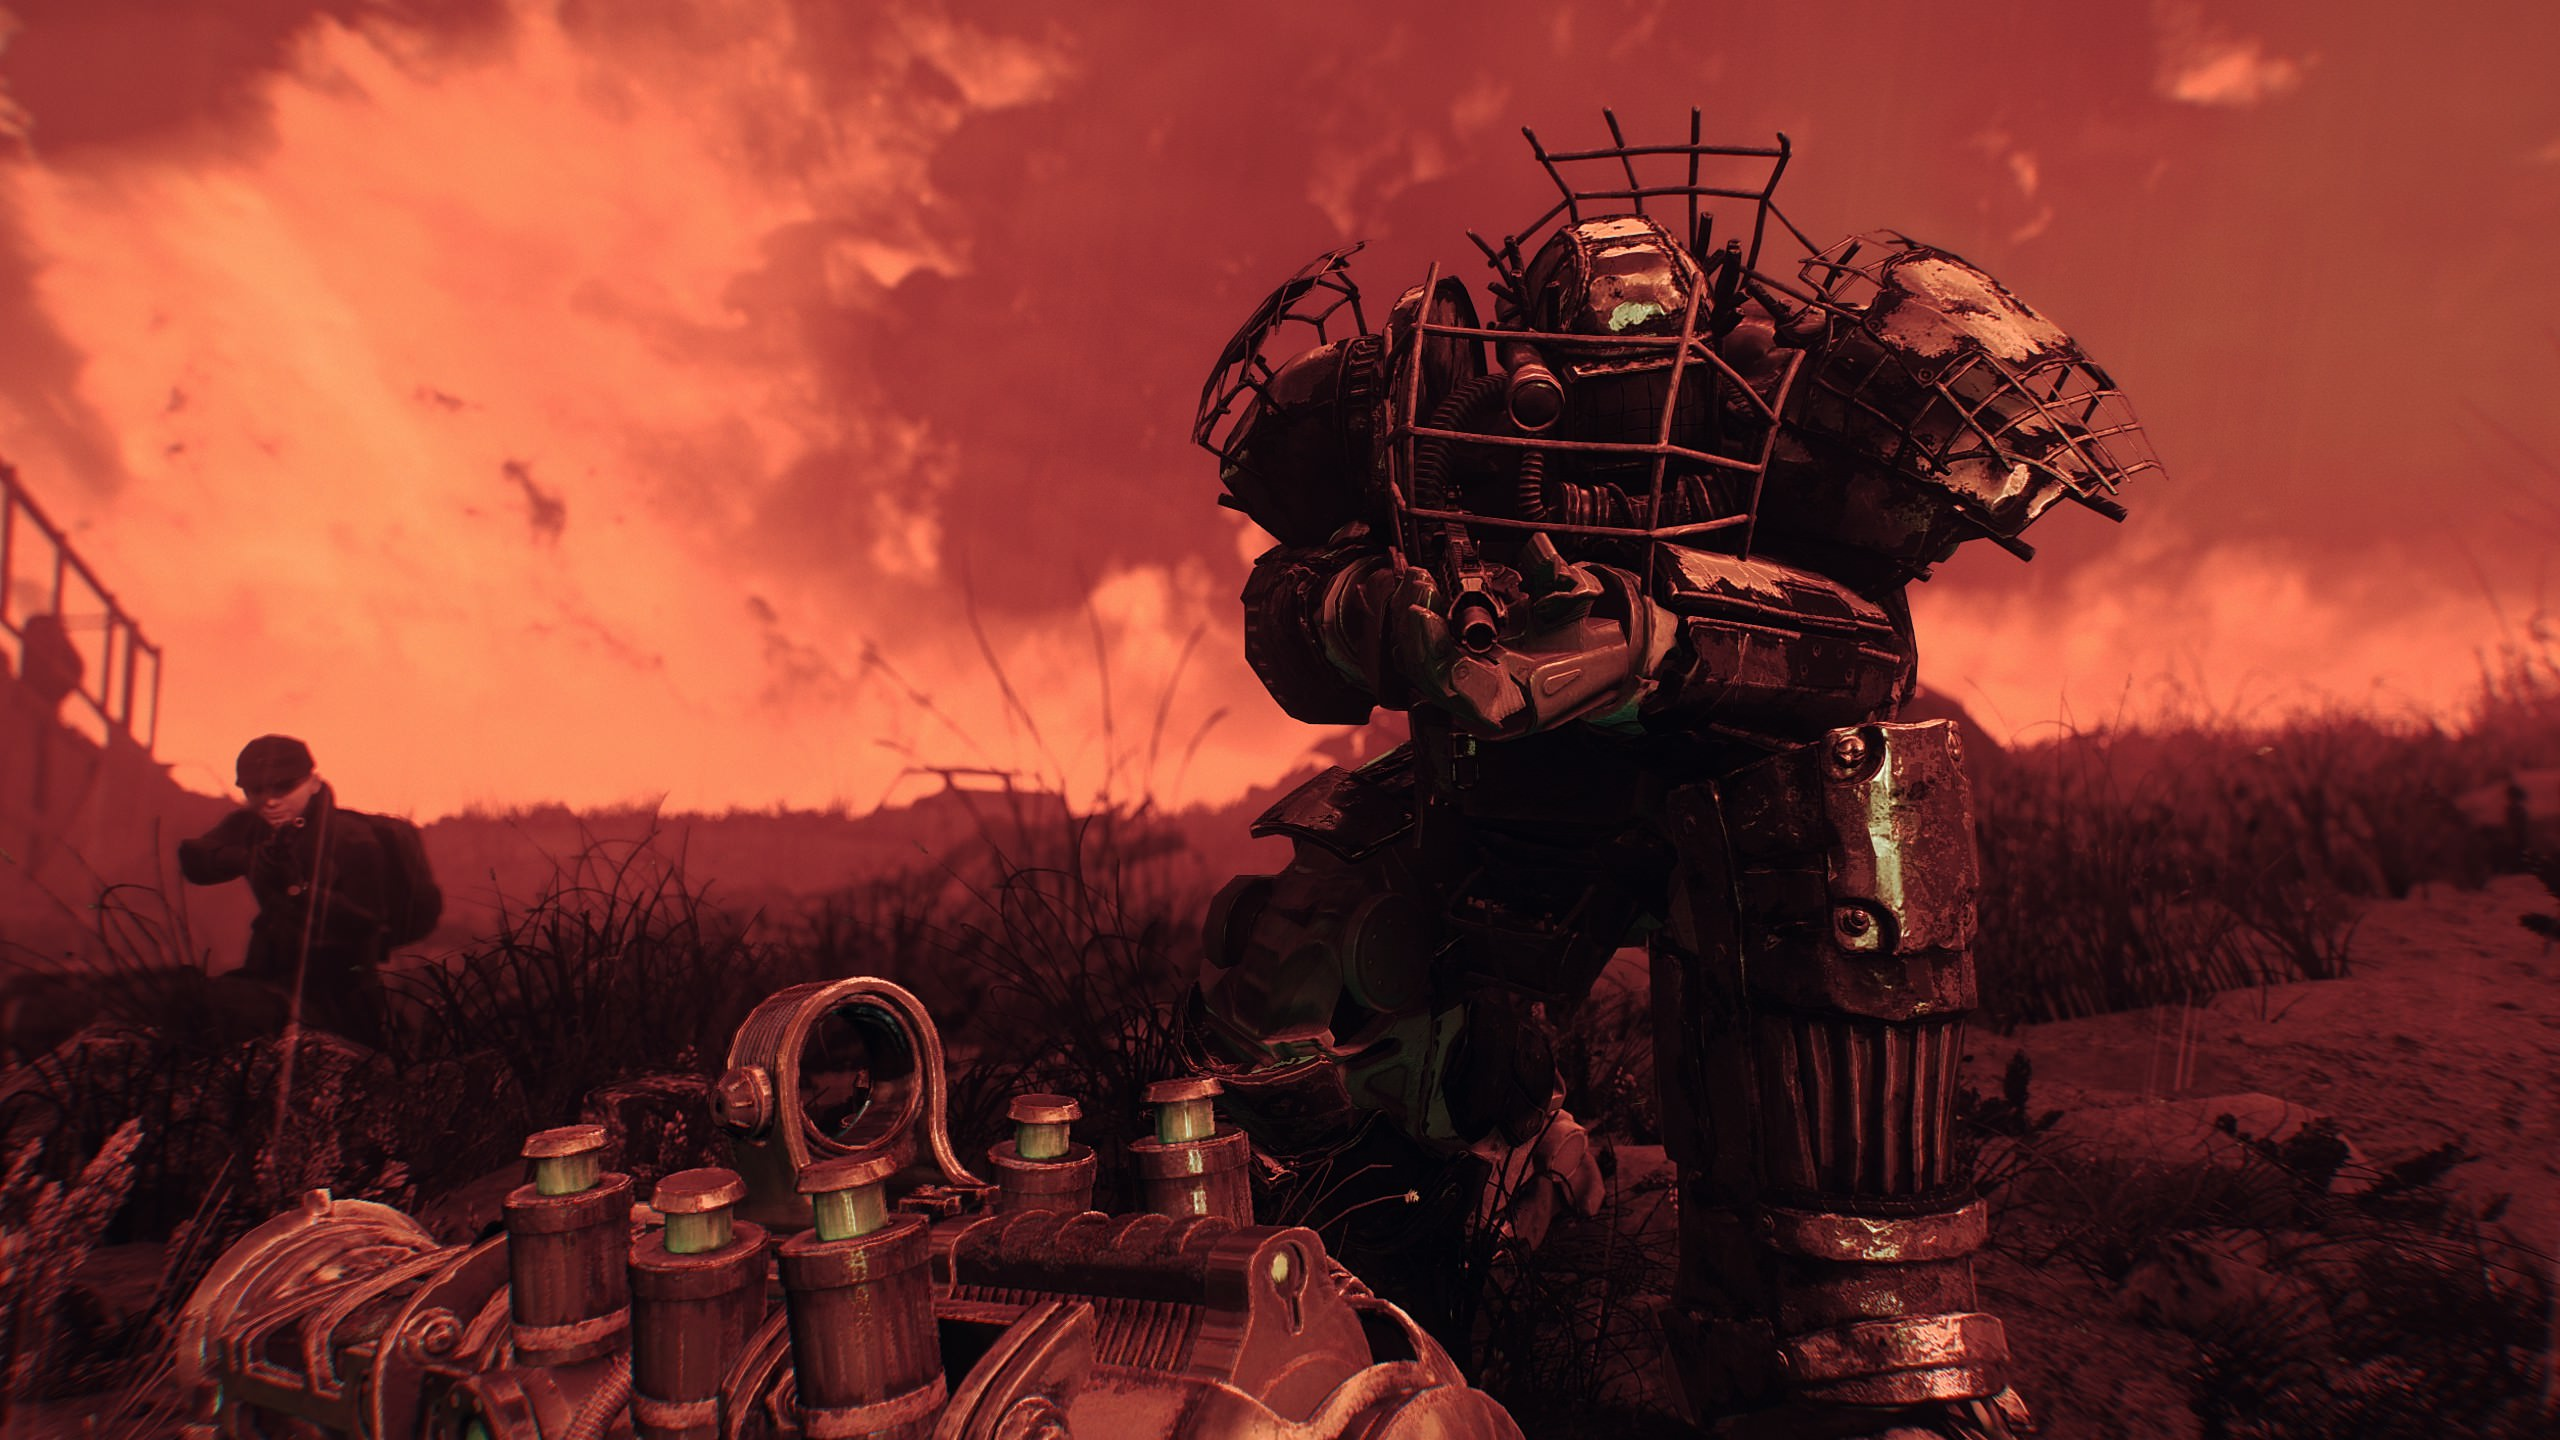 This Game Developer Turned 'Fallout 4' Into His Personal Tabletop